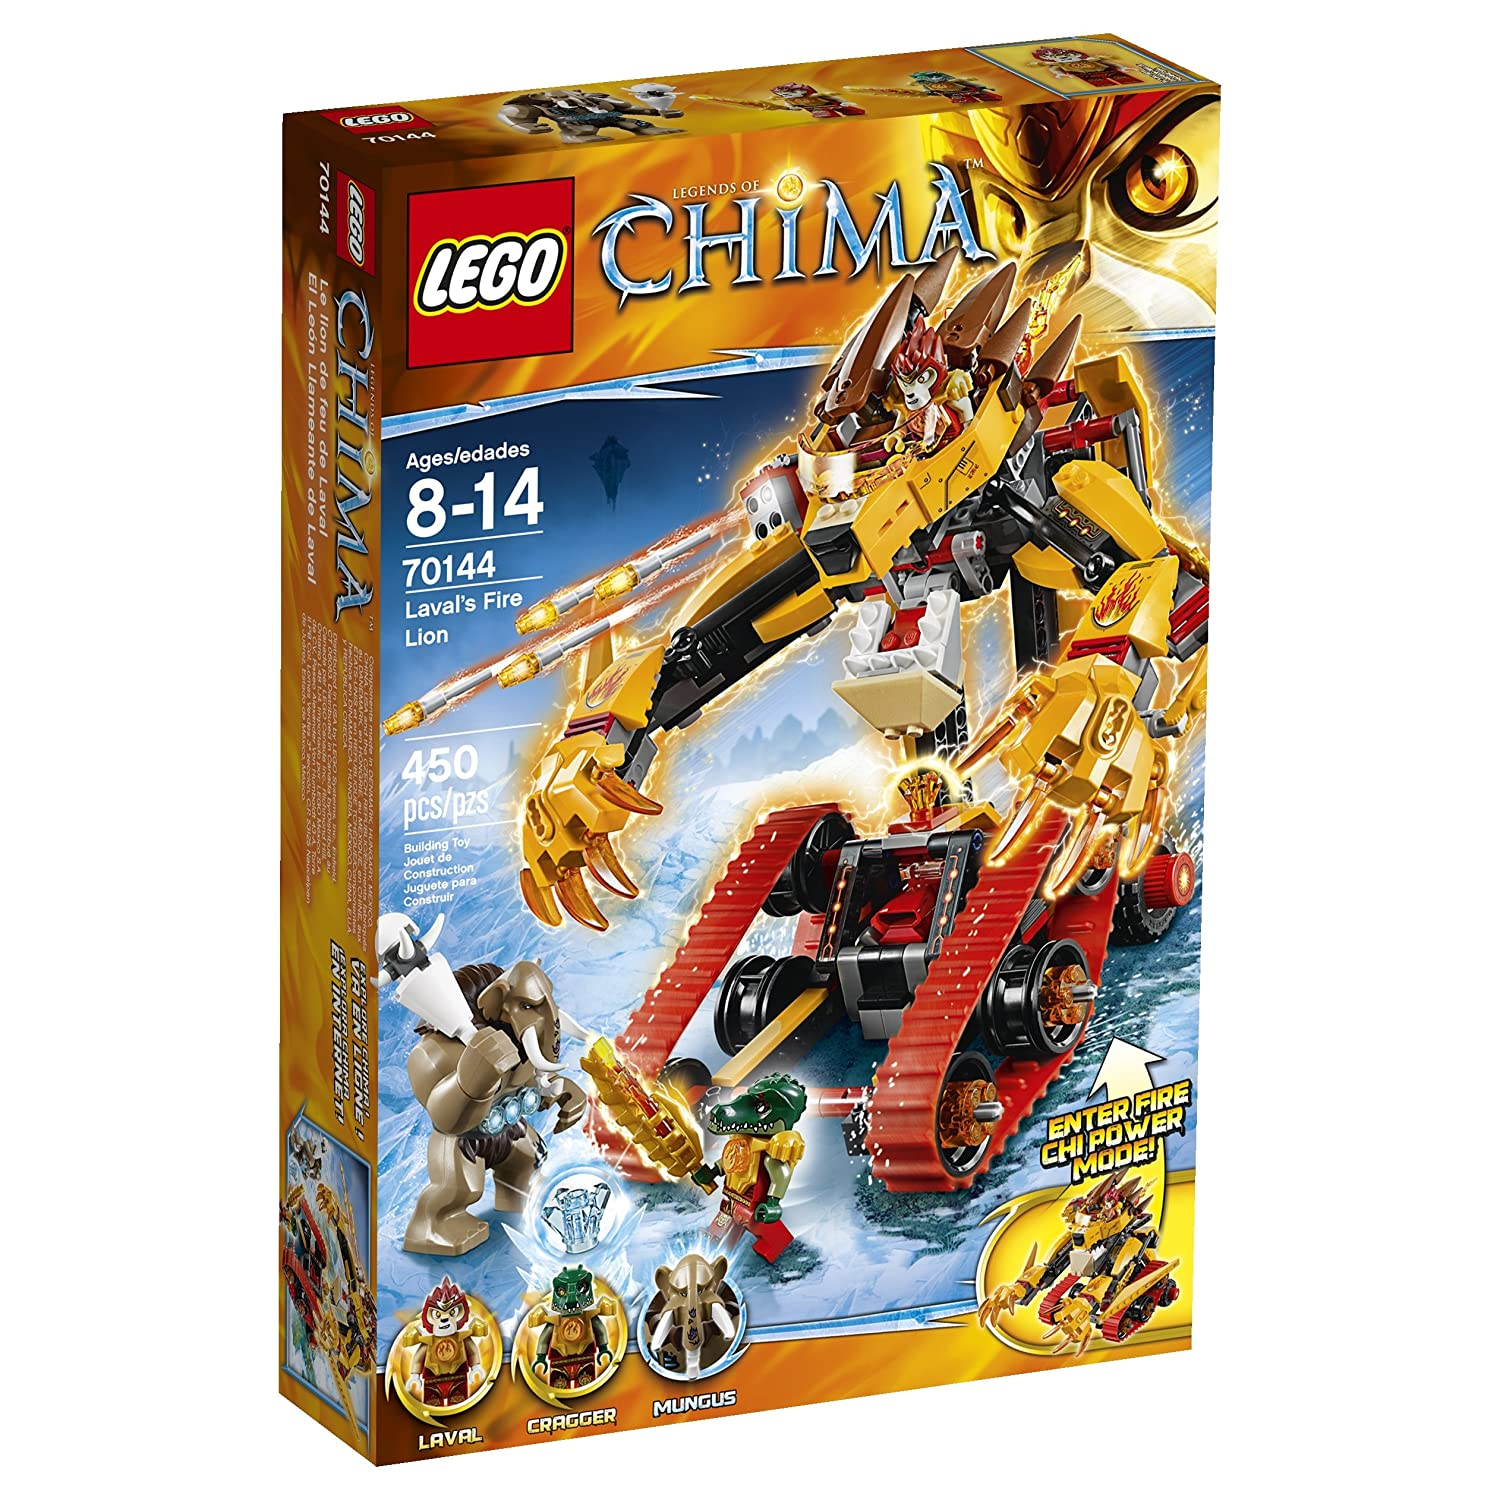 Amazon chima party supplies - Amazon Com Lego Chima 70144 Laval S Fire Lion Building Toy Toys Games